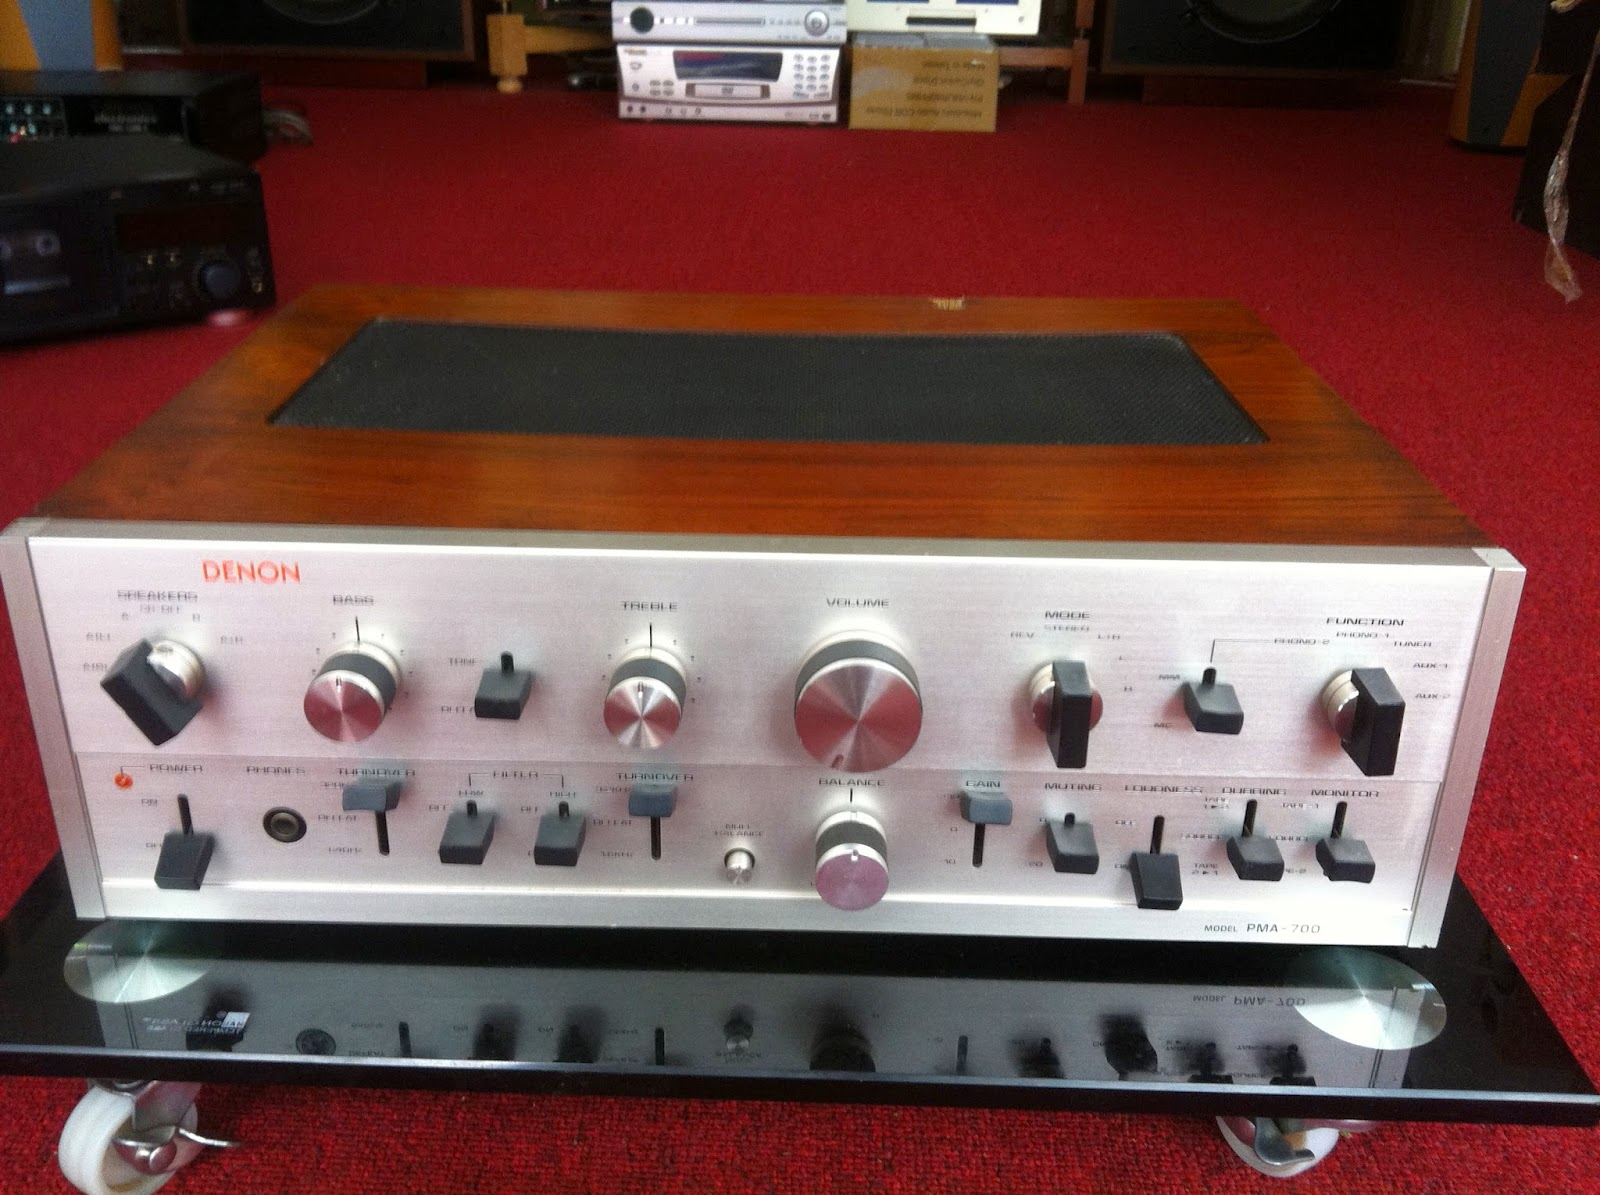 Amply Denon 700 - Made in Japan